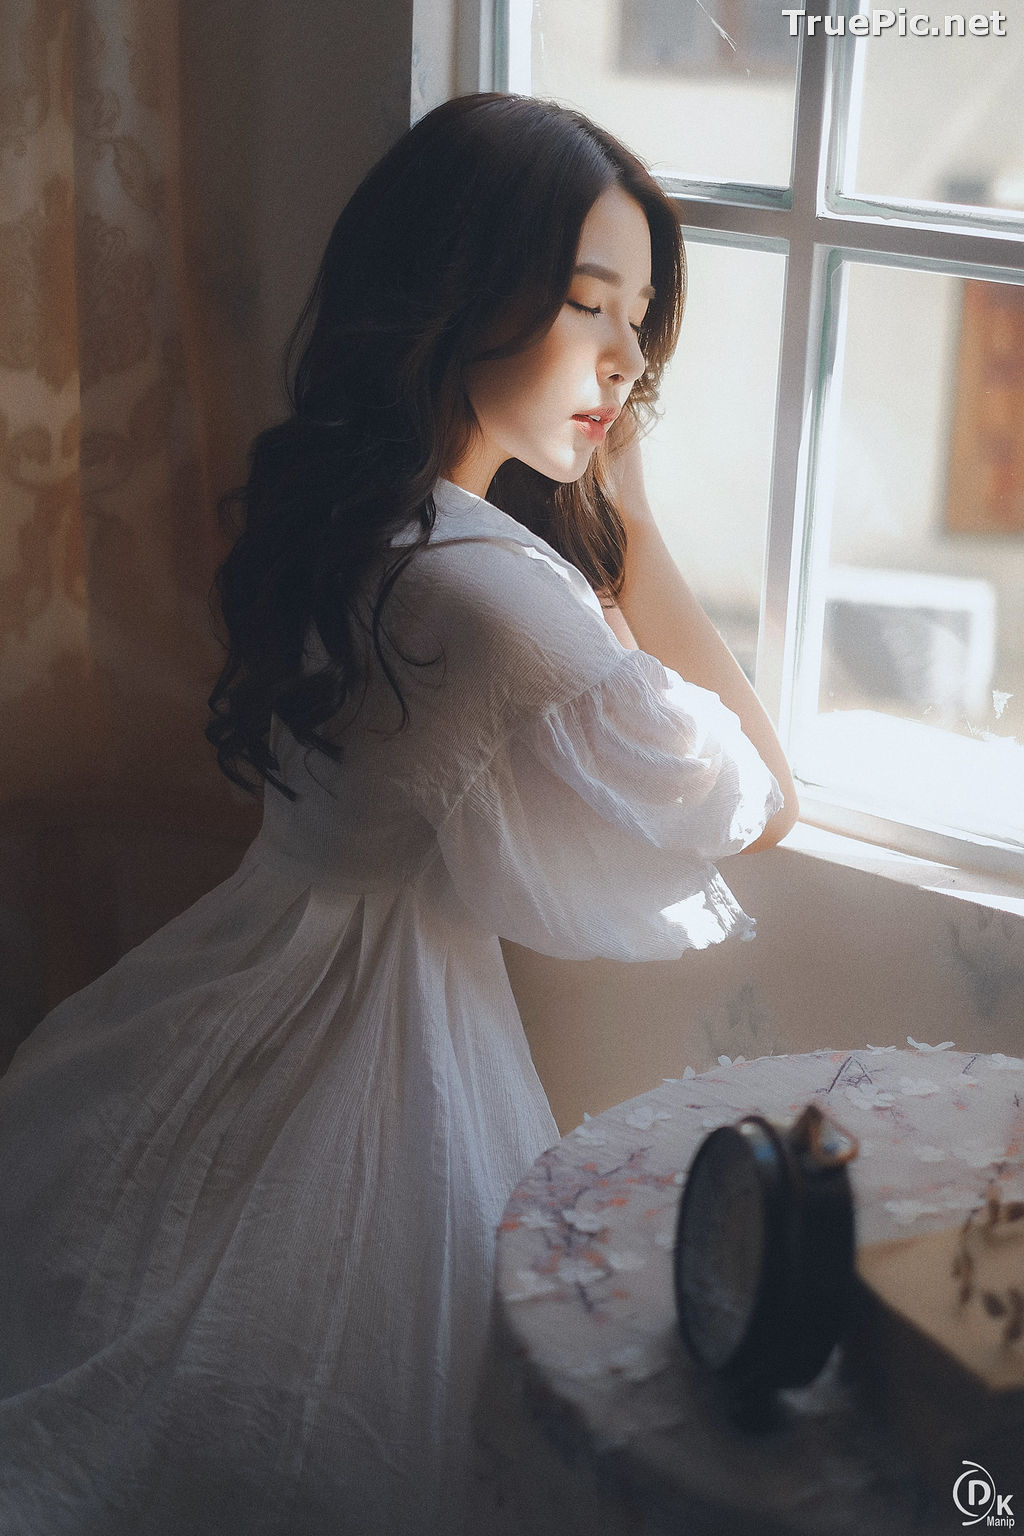 Image Vietnamese Beautiful Girl - The Lonely White Princess - TruePic.net - Picture-2